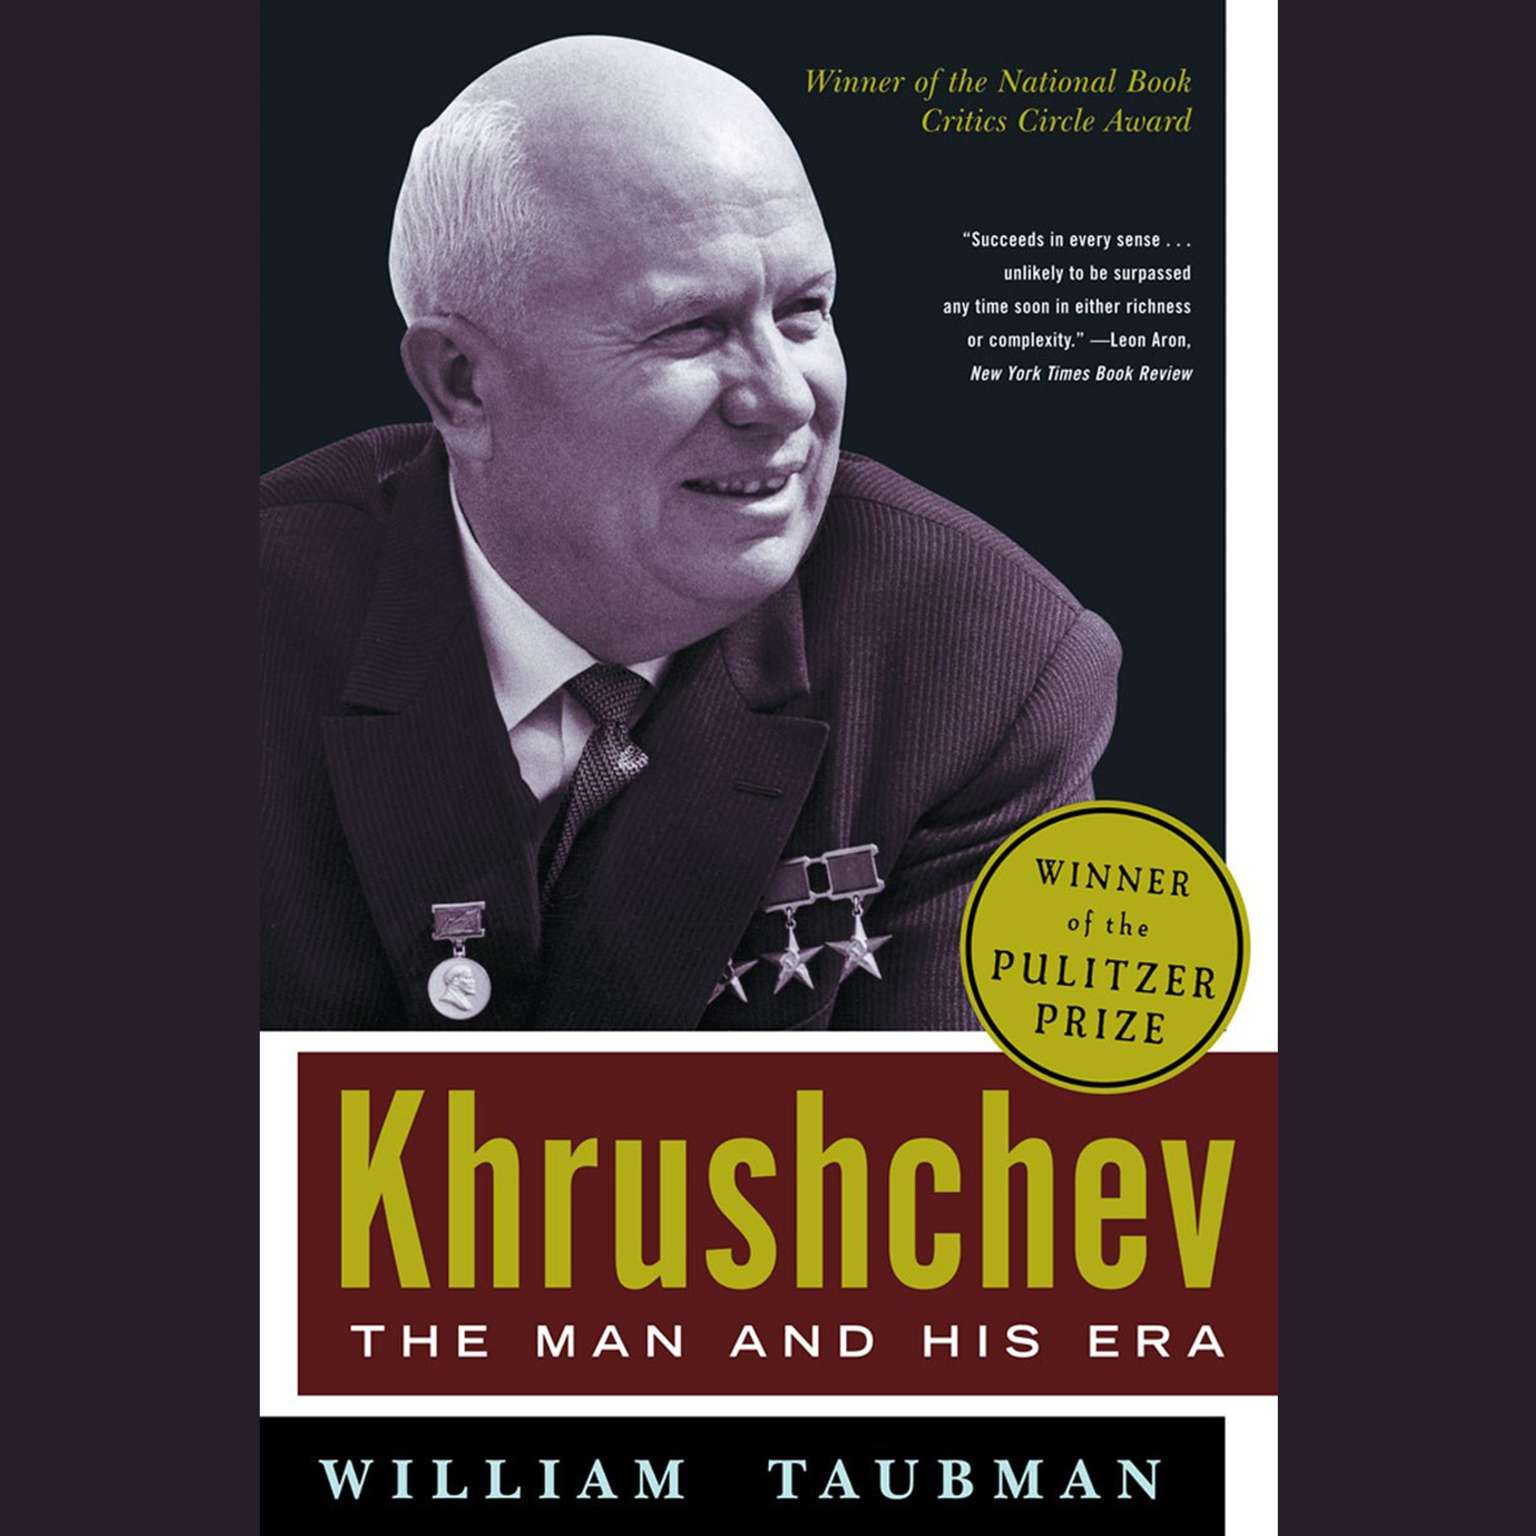 Khrushchev: The Man and His Era Audiobook, by William Taubman